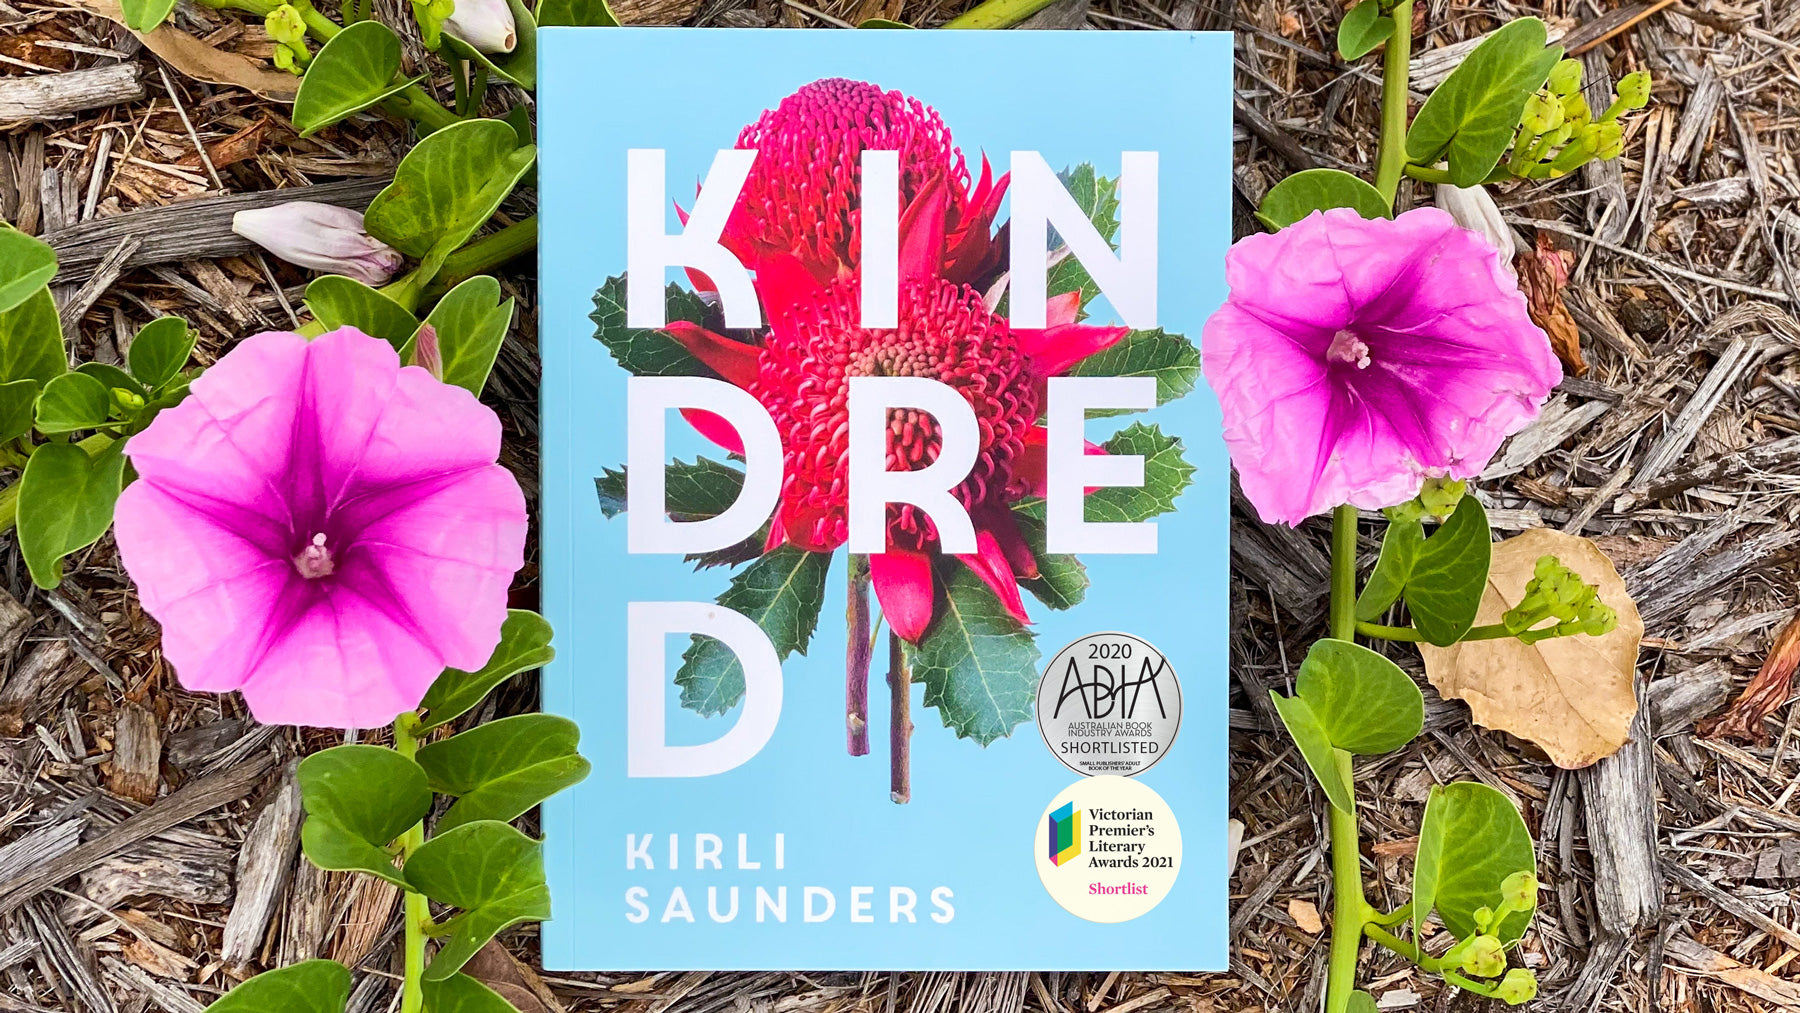 Kindred by Kirli Saunders shortlisted in the Victorian Premier's Literary Awards